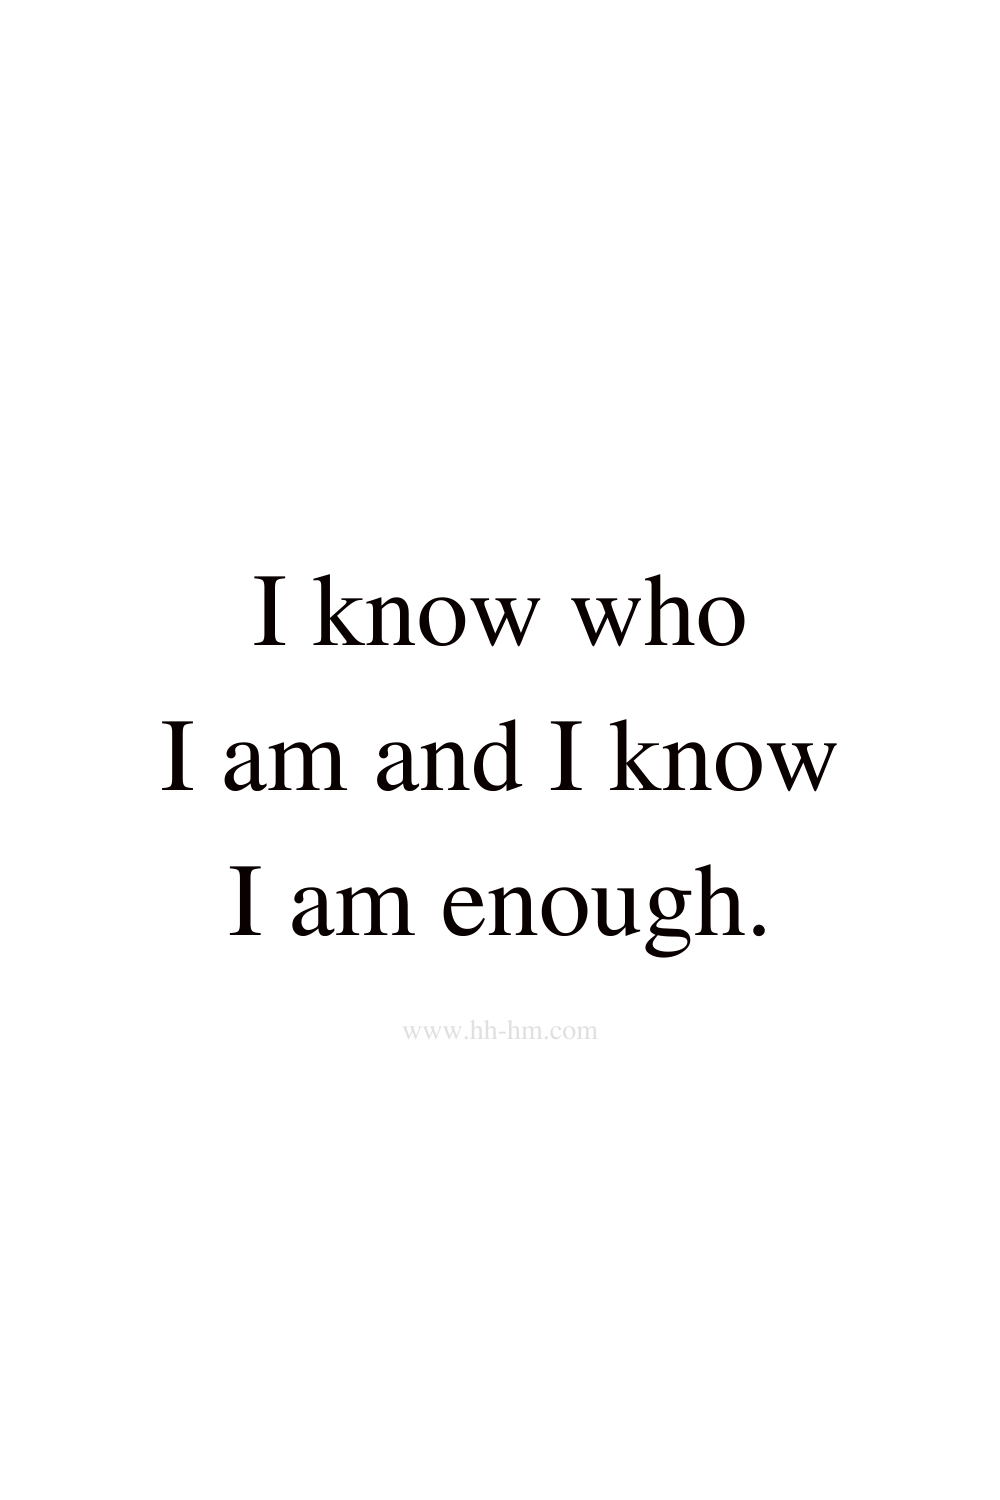 I know who I am and I know I am enough - self love and self confidence morning affirmations